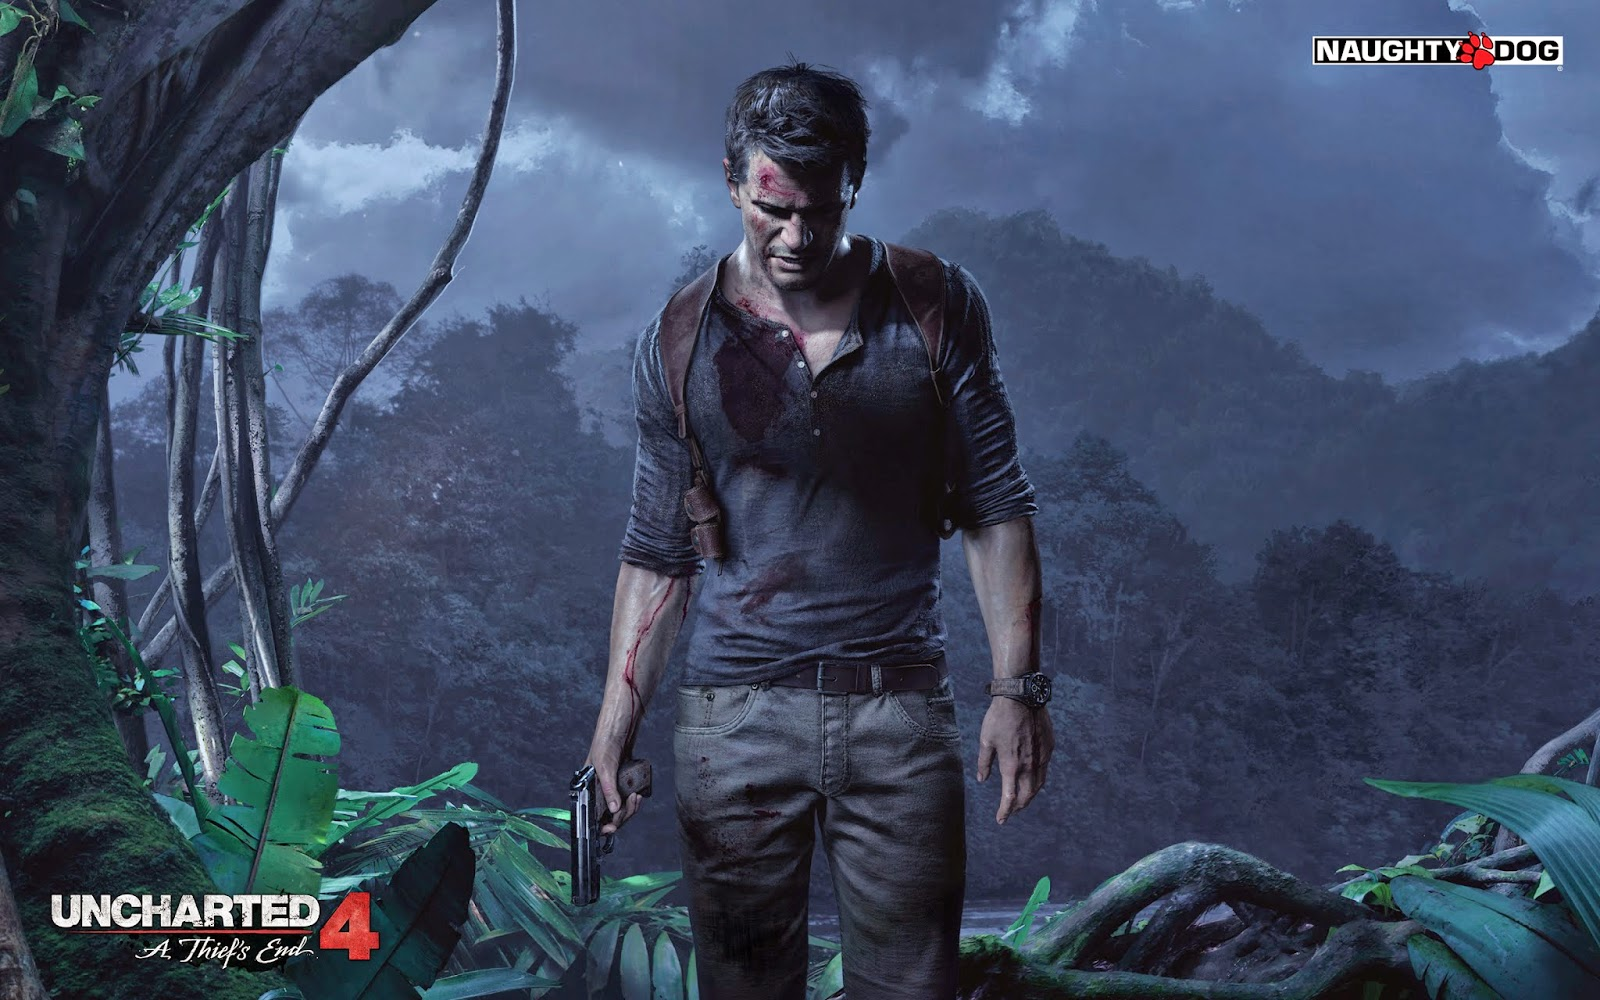 Uncharted 4 A Thief S End Gets E3 2015 Demo Featuring Car Chase